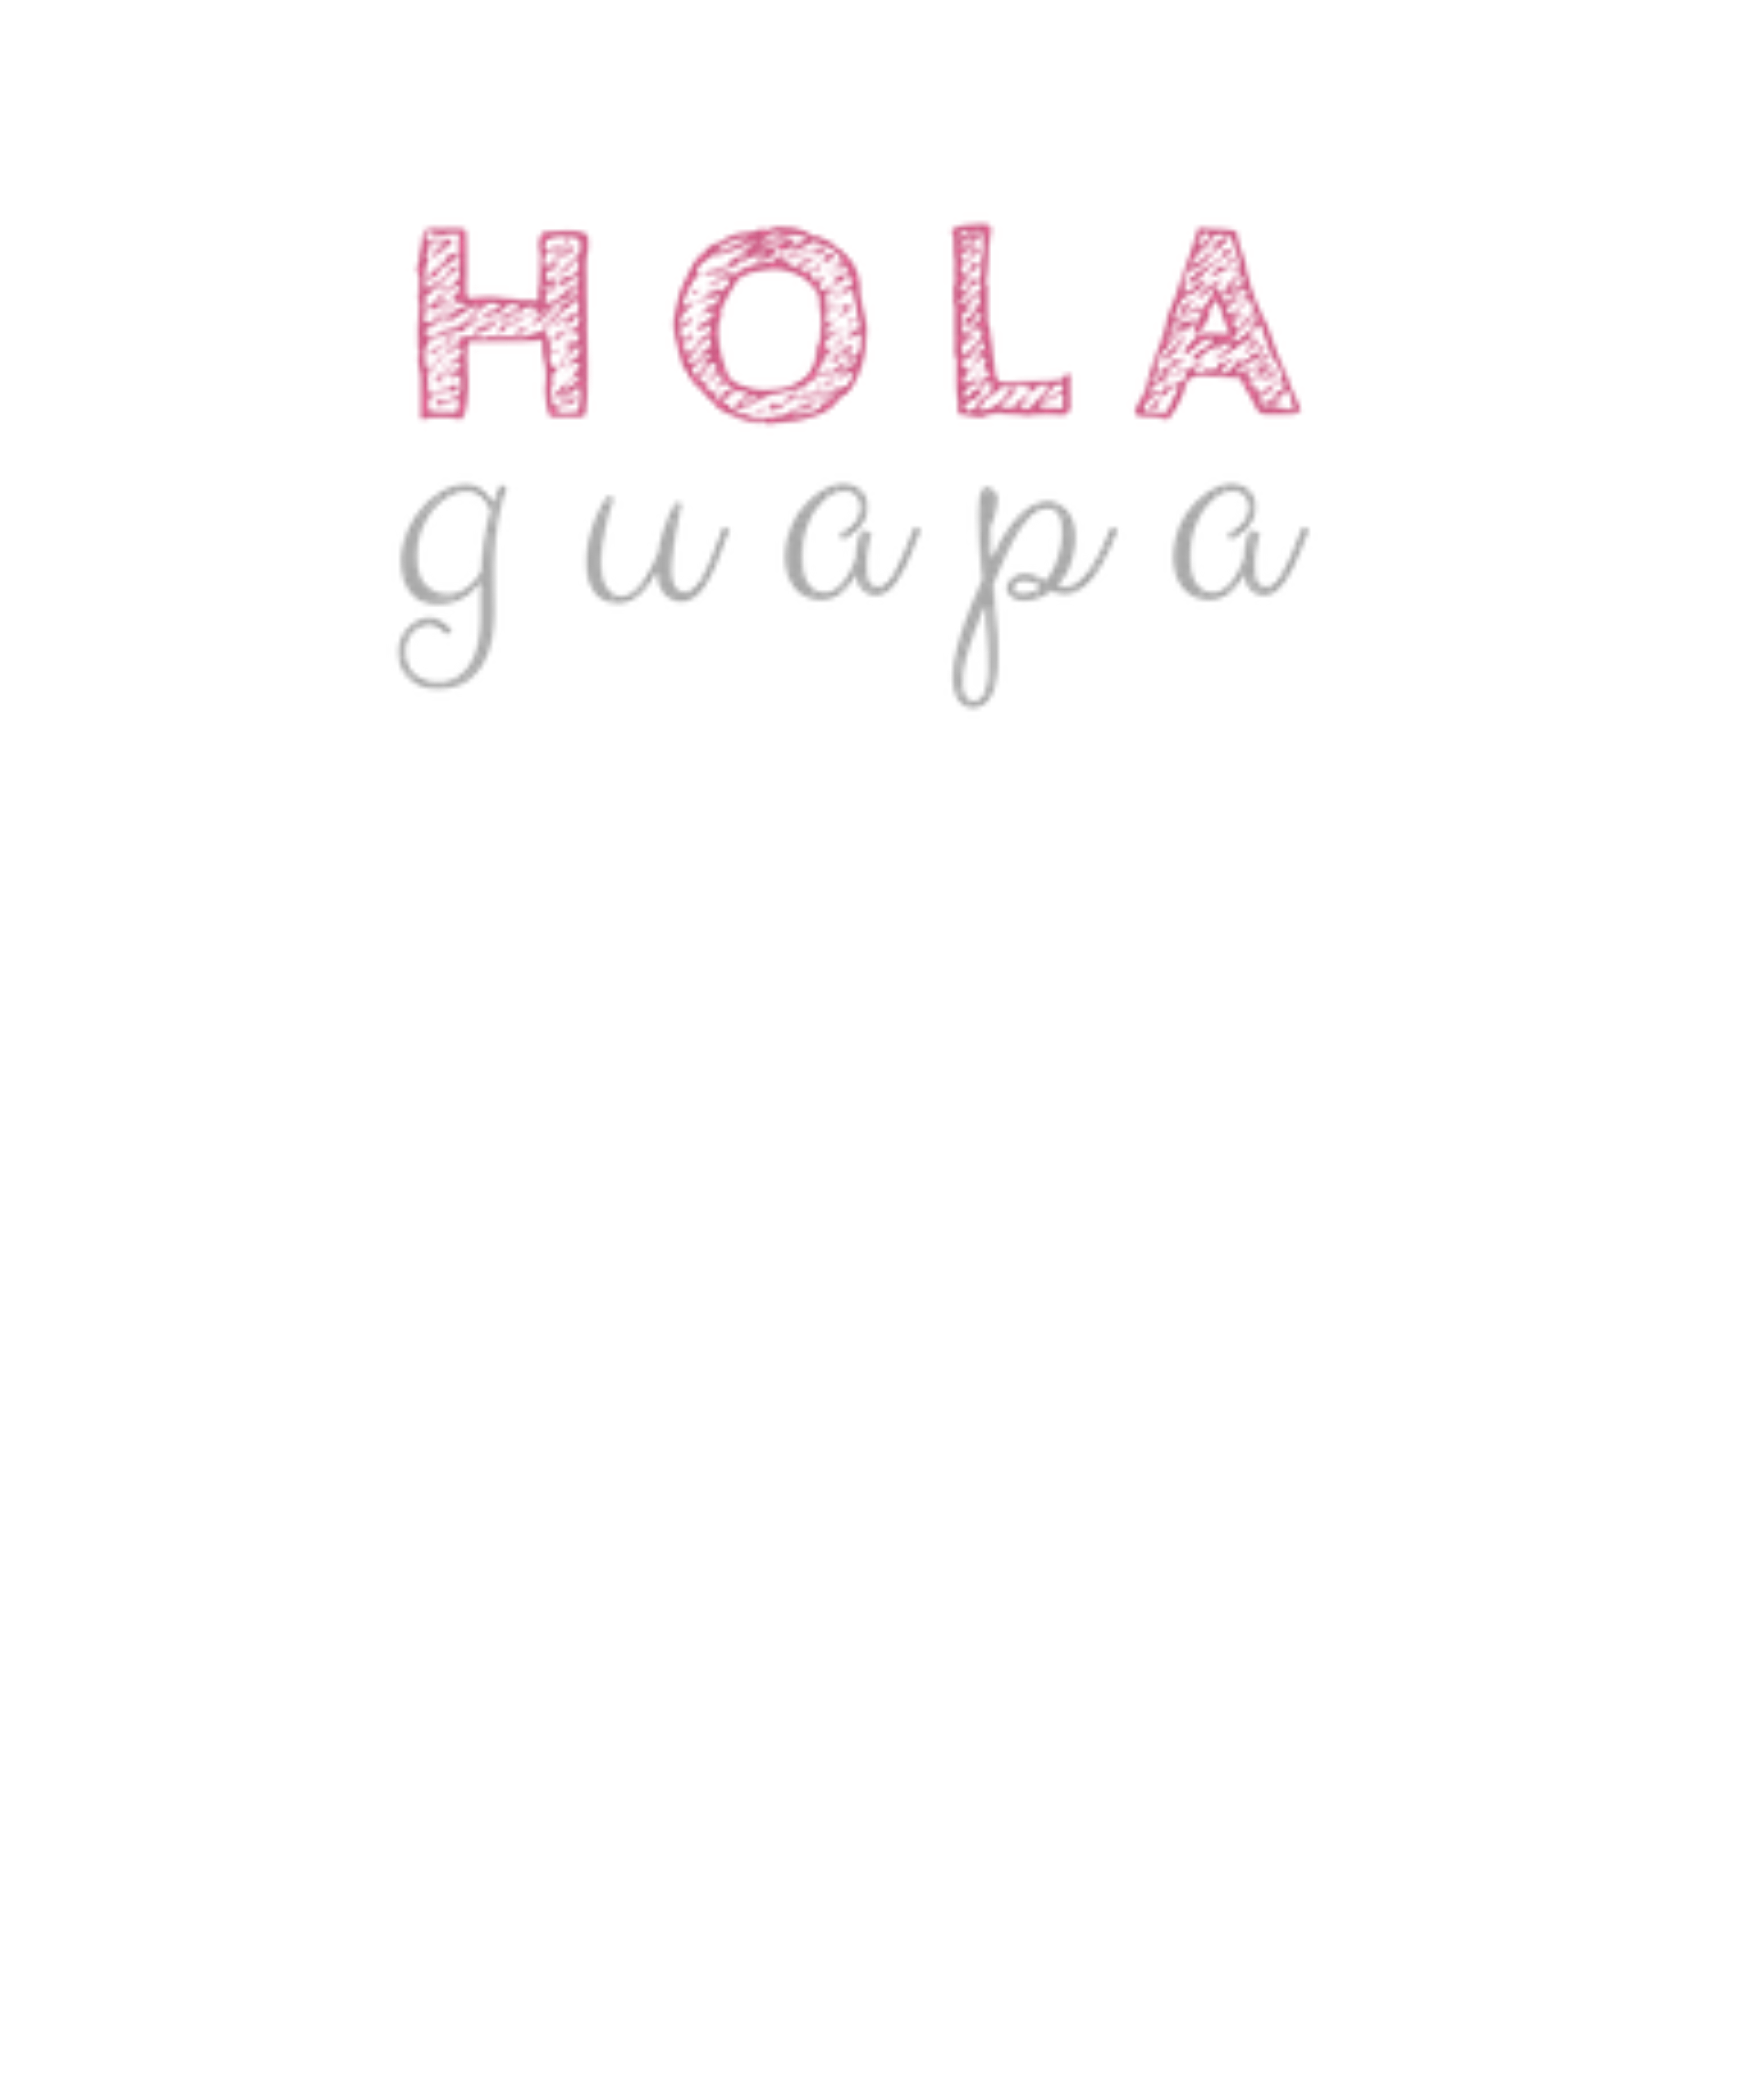 Hola Guapa Image Customize Download It For Free 204699